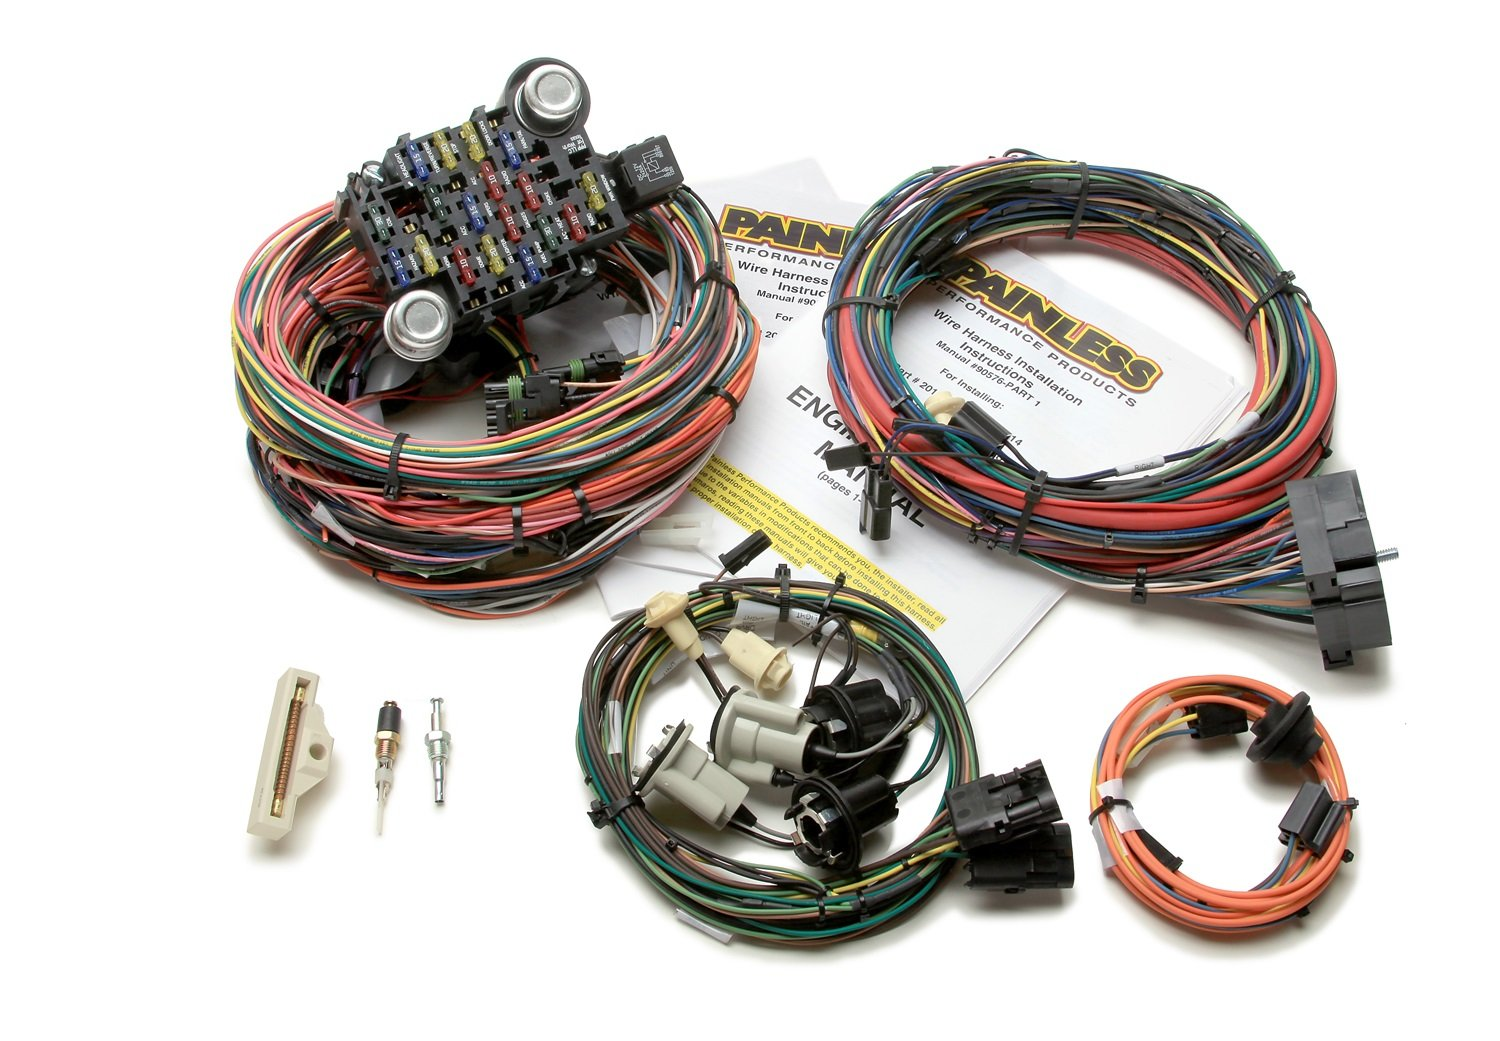 1968 ford mustang ignition switch wiring harness amazon